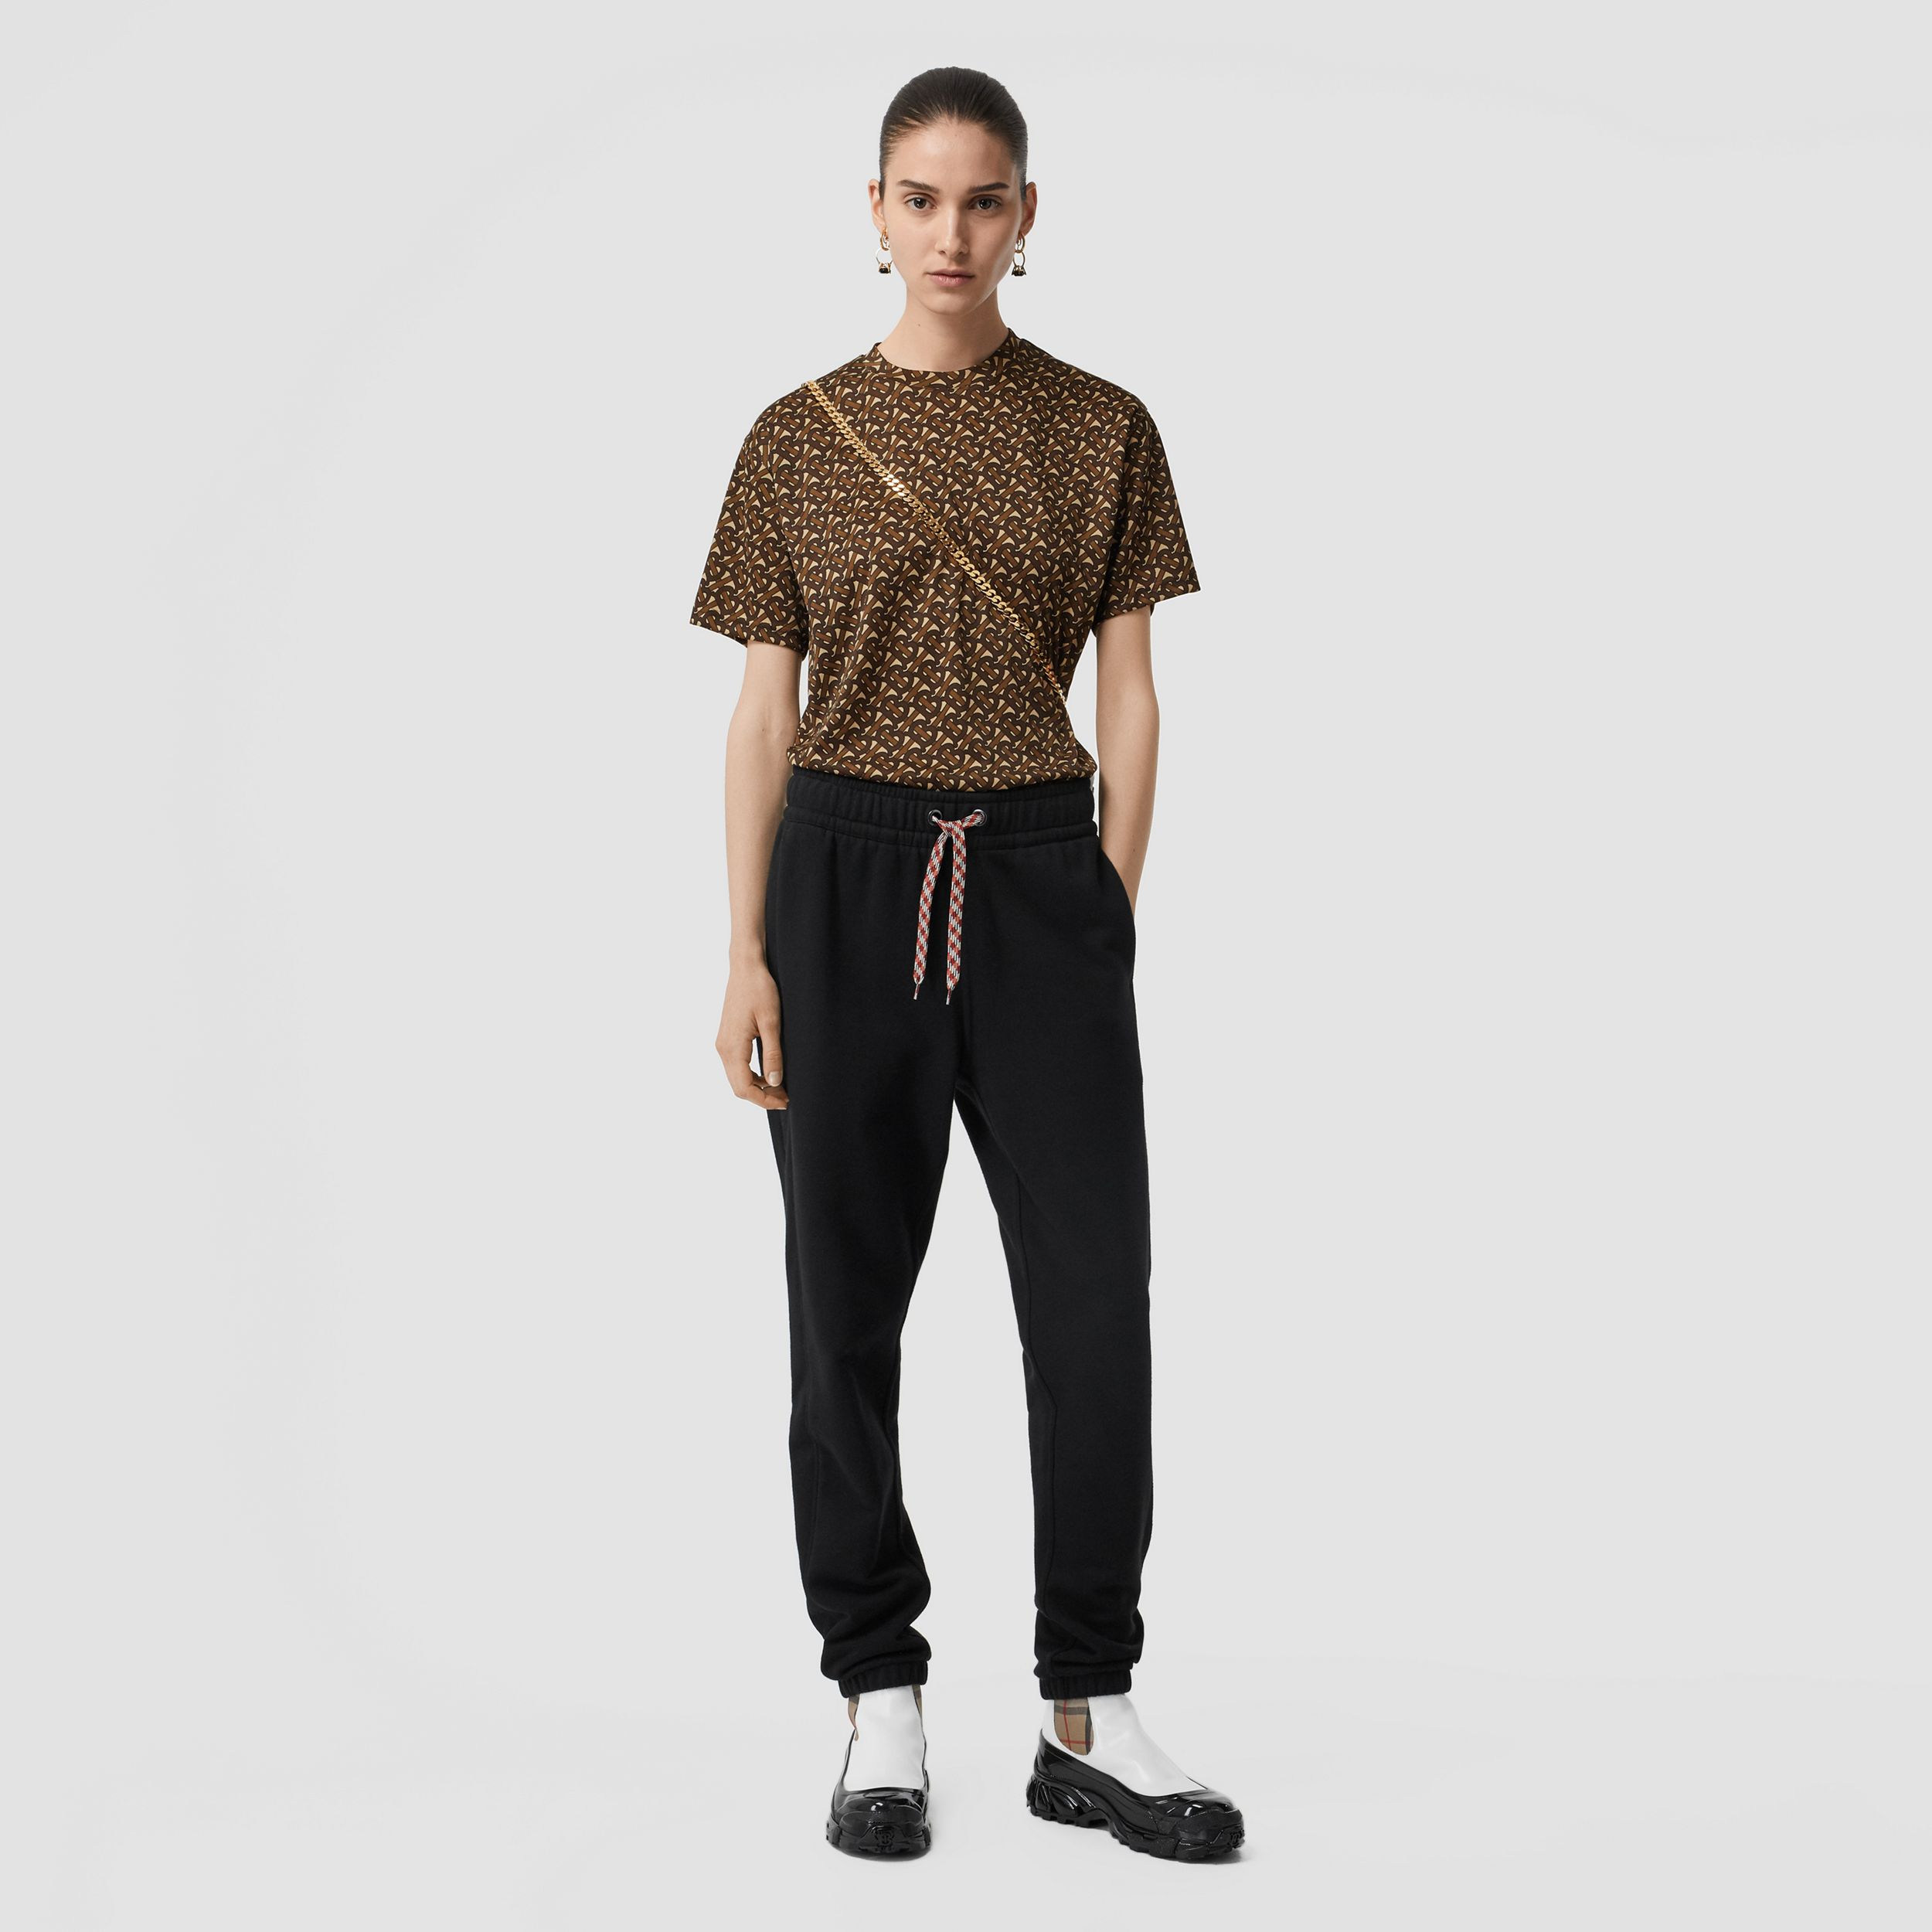 Monogram Print Jersey Oversized T-shirt in Bridle Brown - Women | Burberry United Kingdom - 1